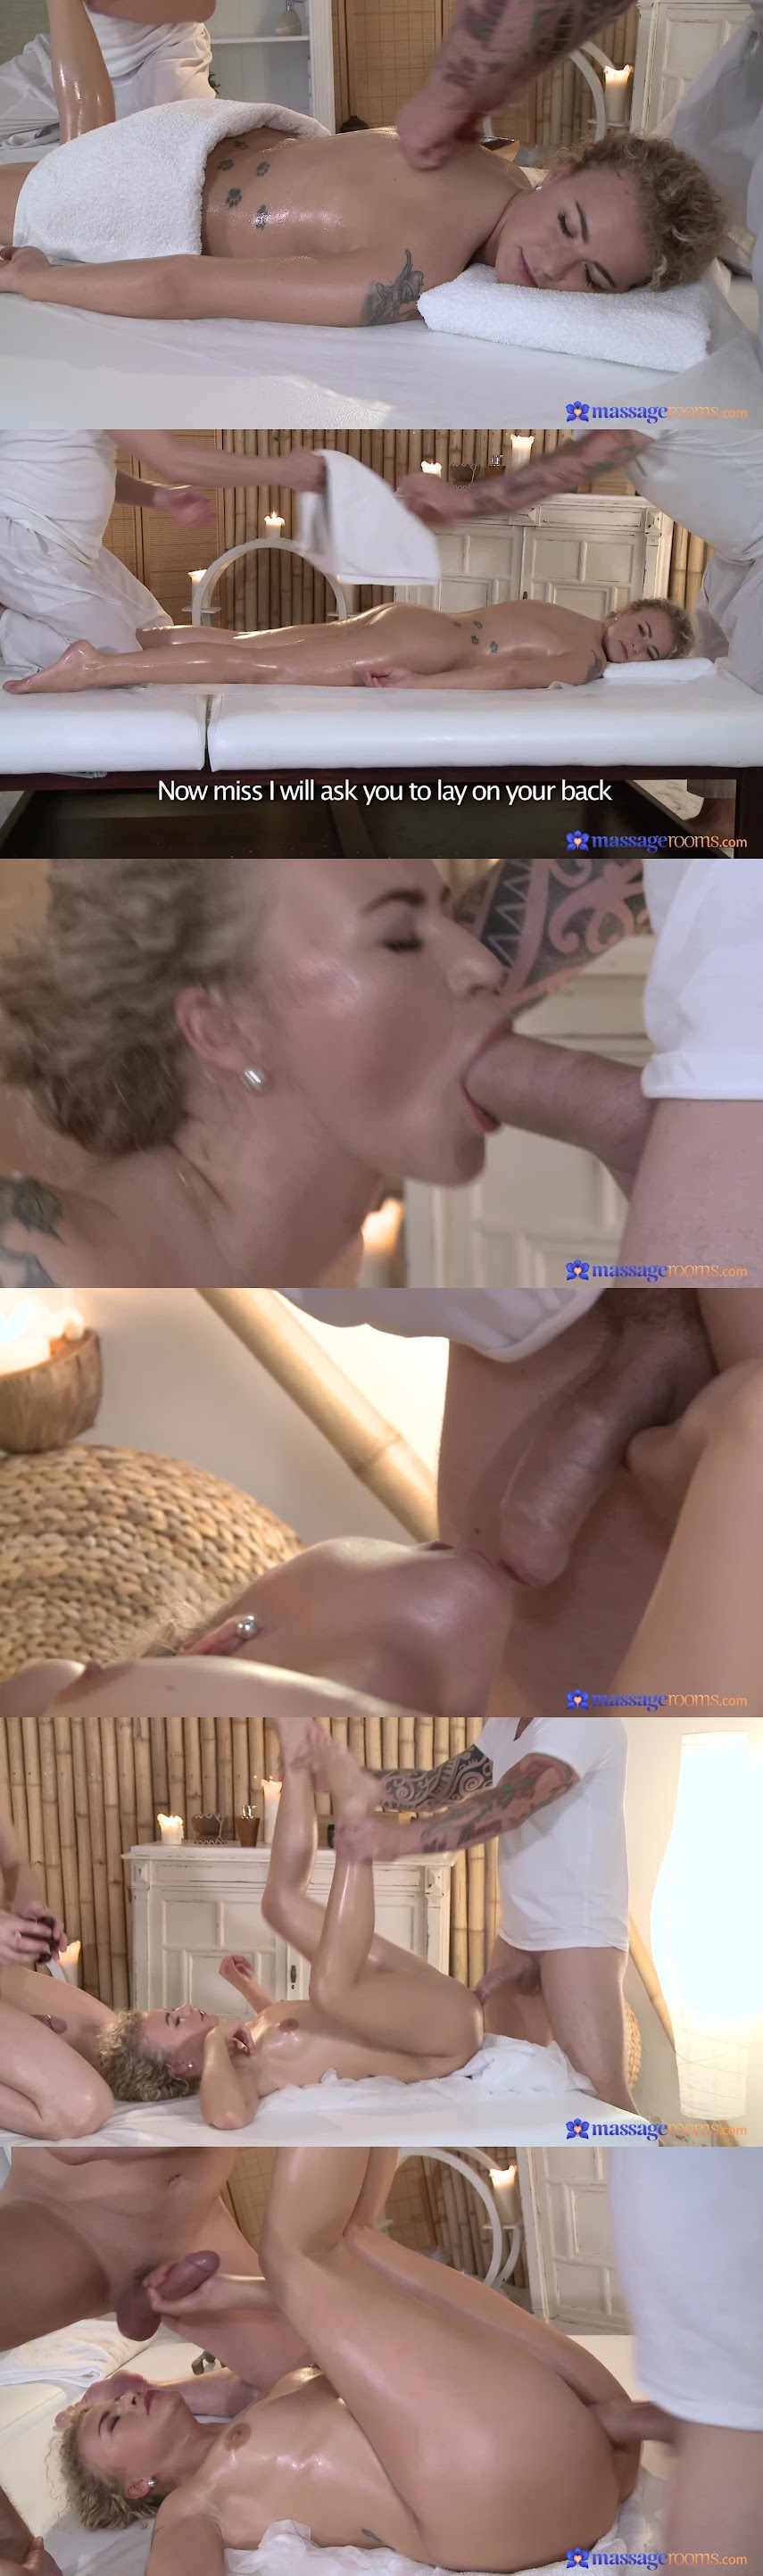 sexyhub.14.07.22.blonde-gets-double-teamed-by-two-masseurs-cocksReal Street Angels